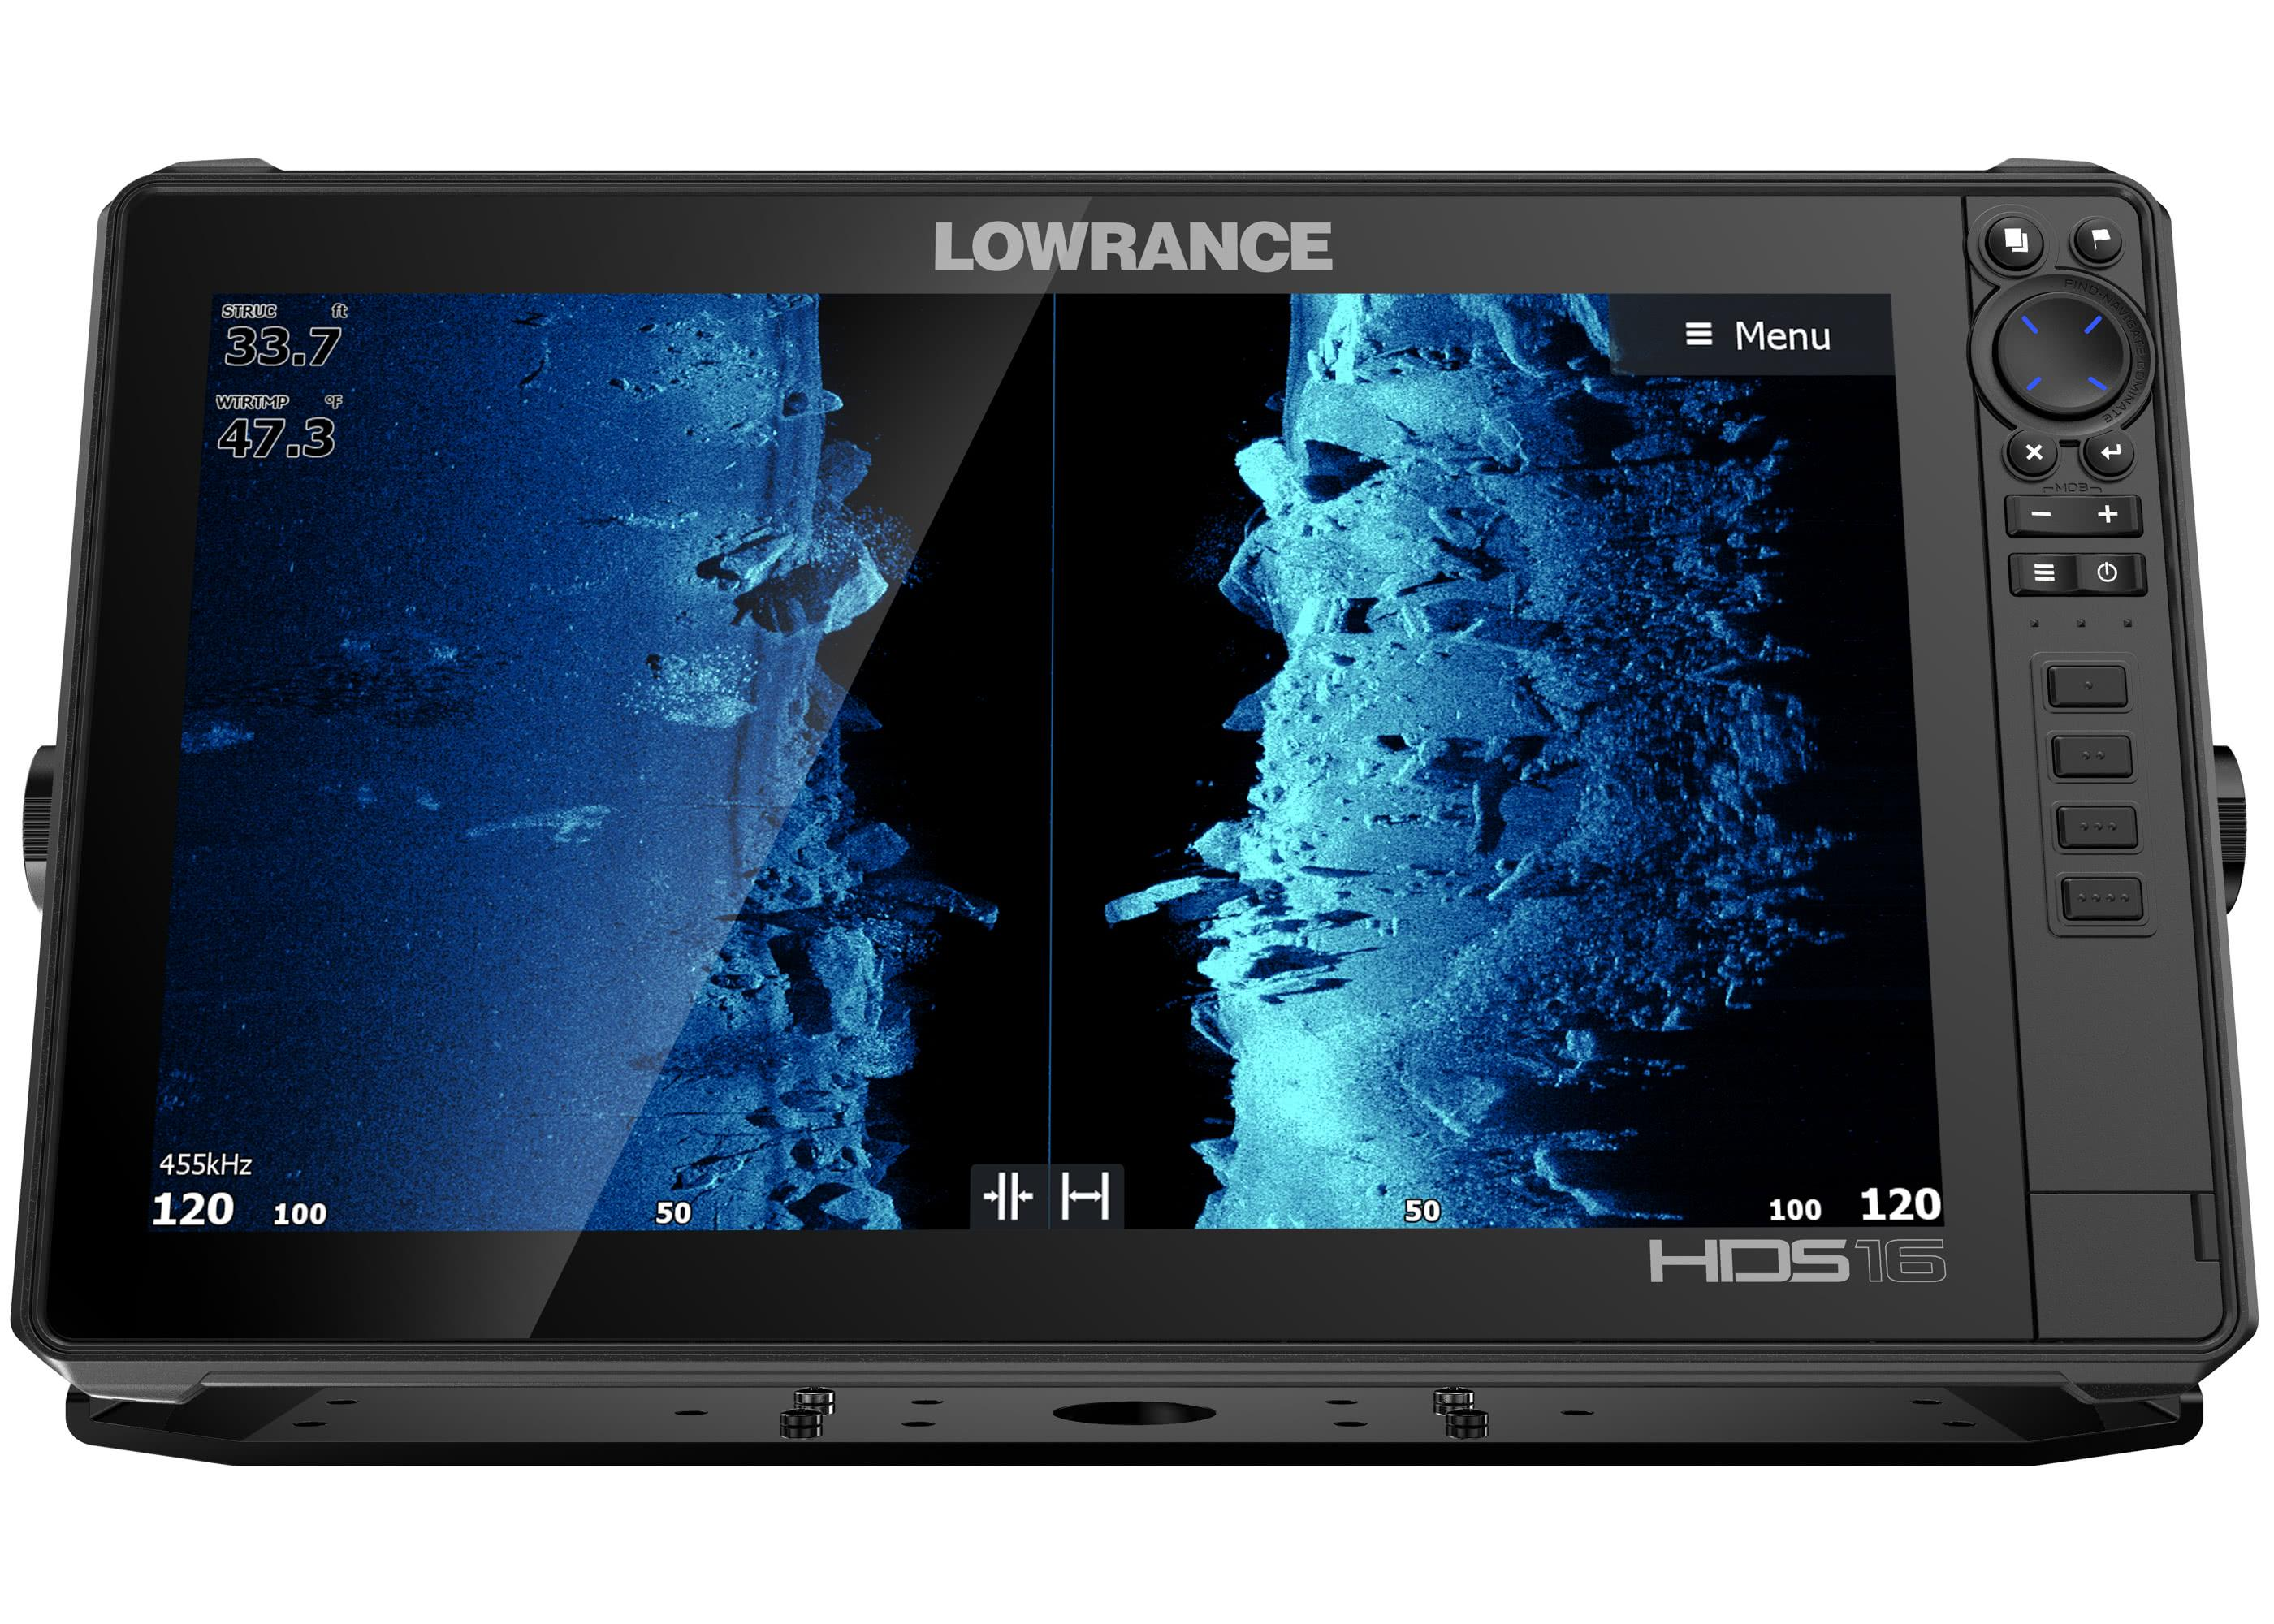 81691_81692_LOWRANCE_HDS-16_Live (6)-Bearbeitet.jpg